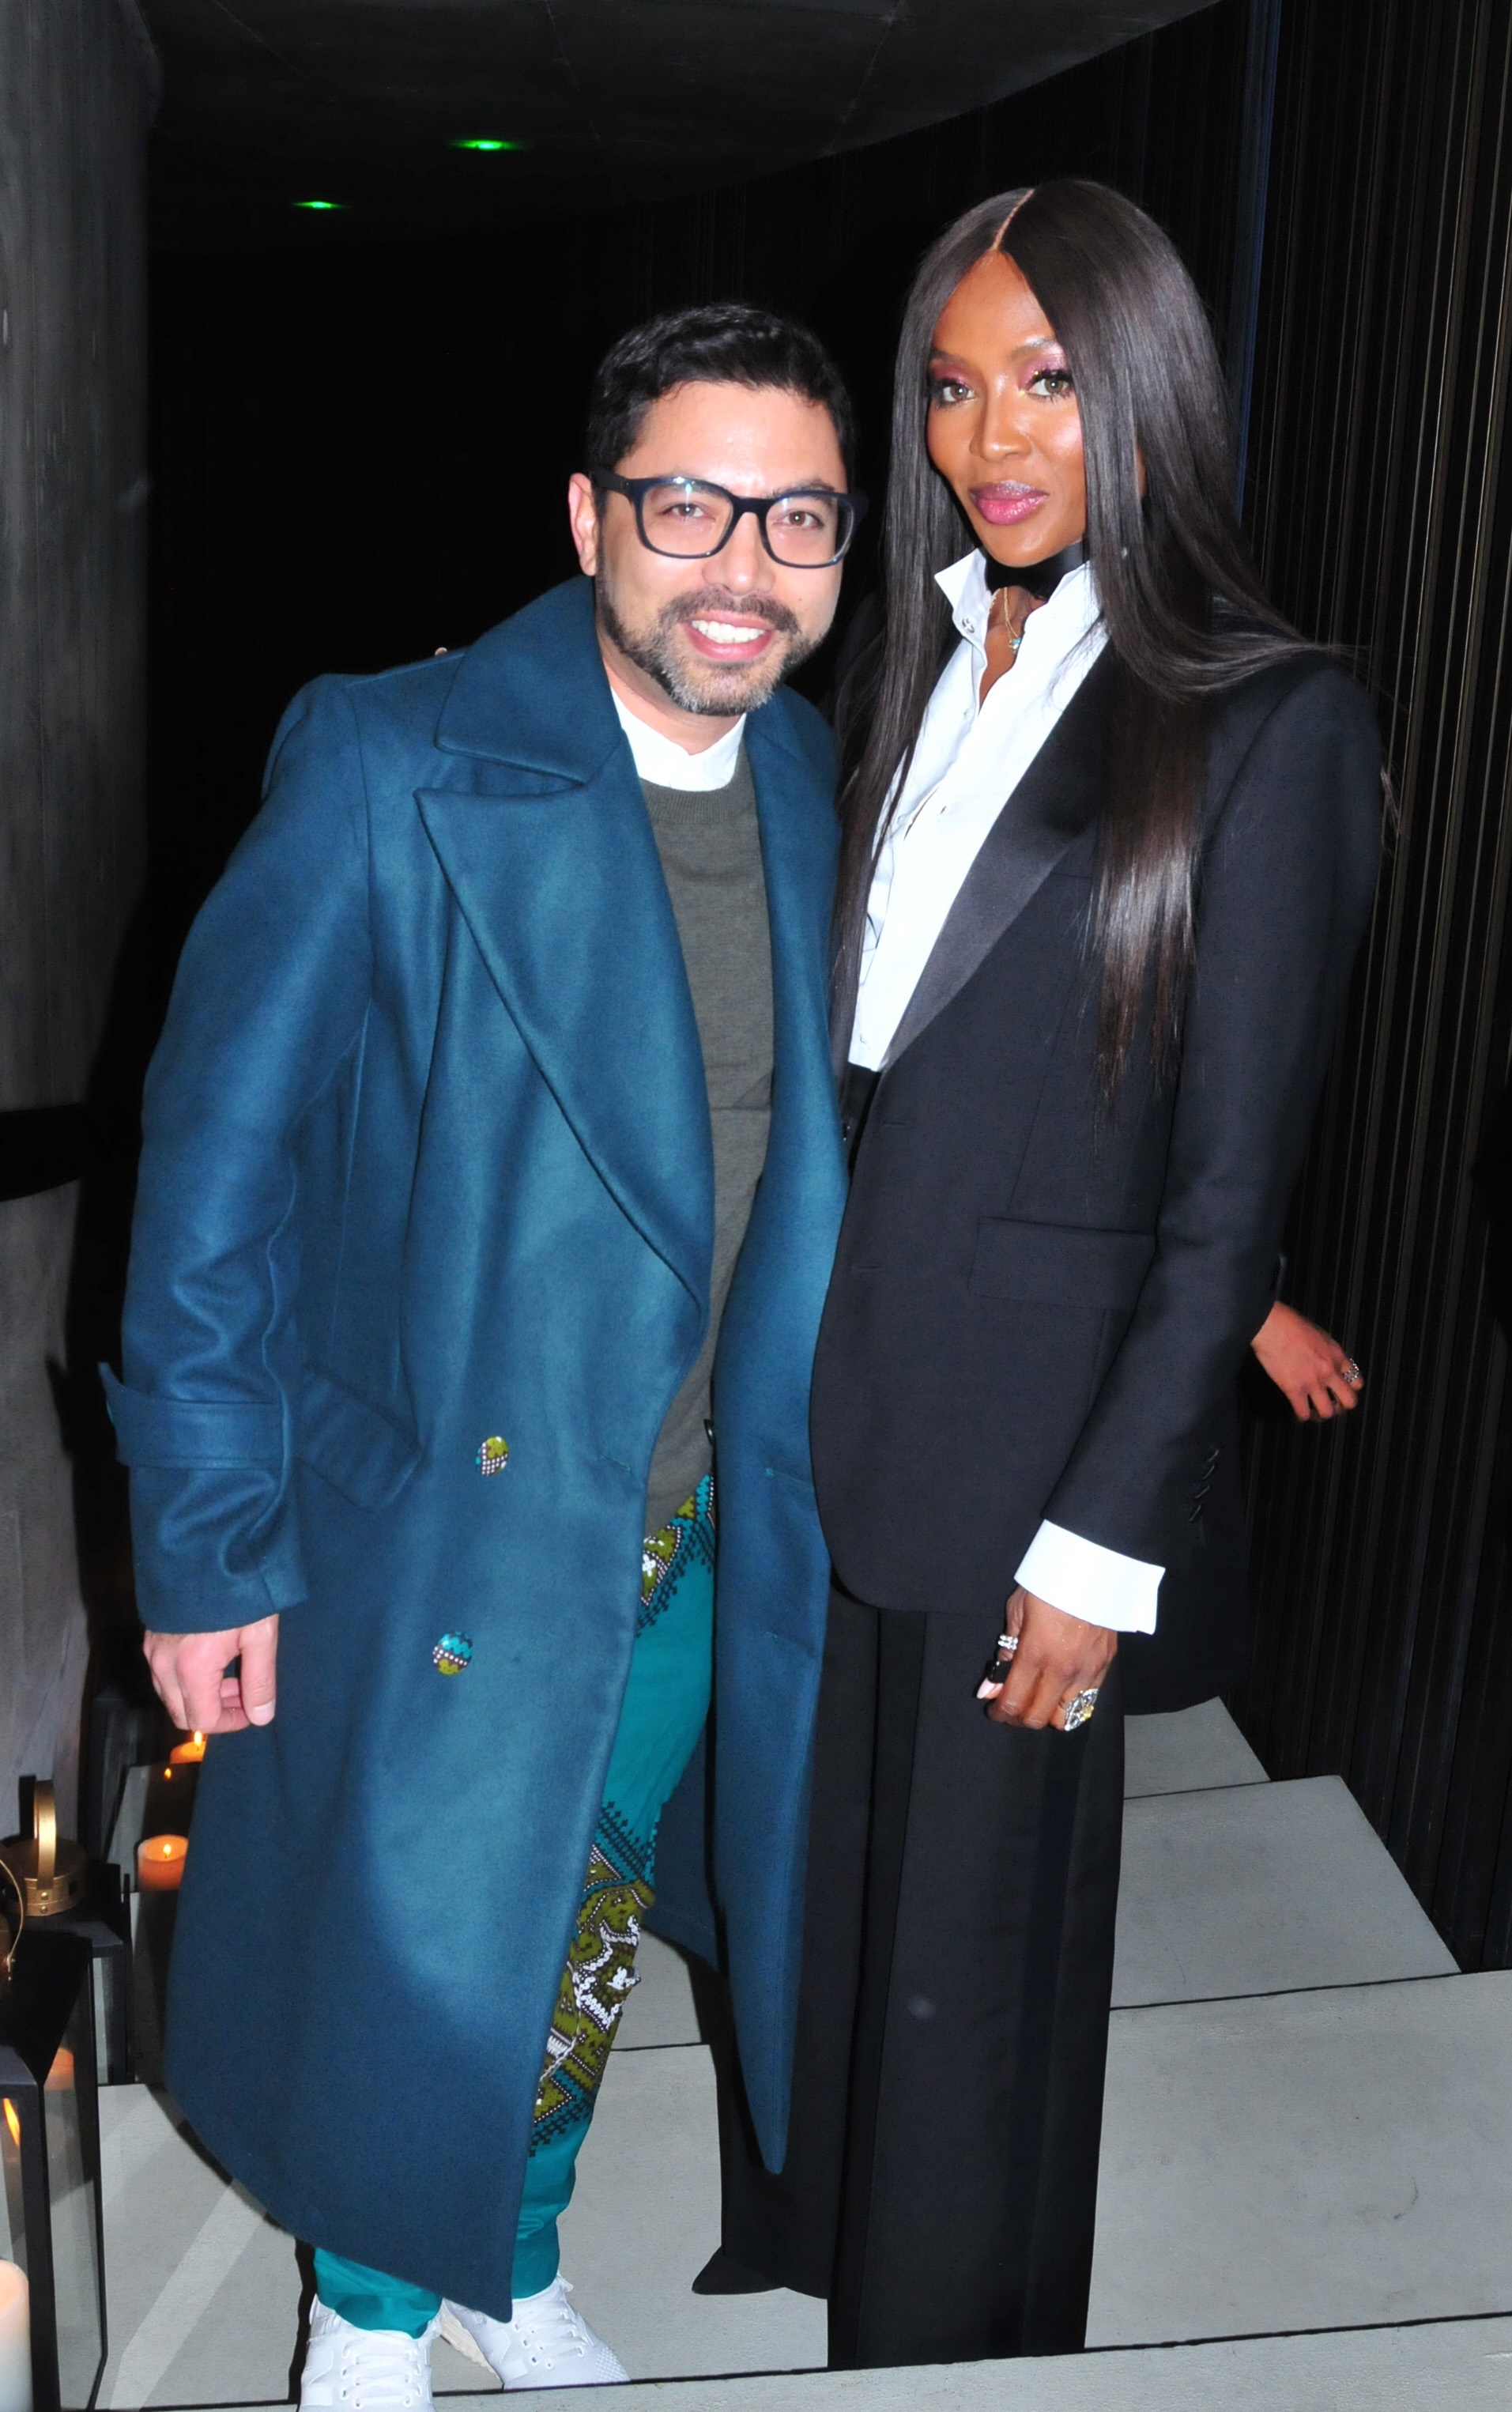 South African designer and personality Craig Jacobs with Naomi Campbell at the launch event.